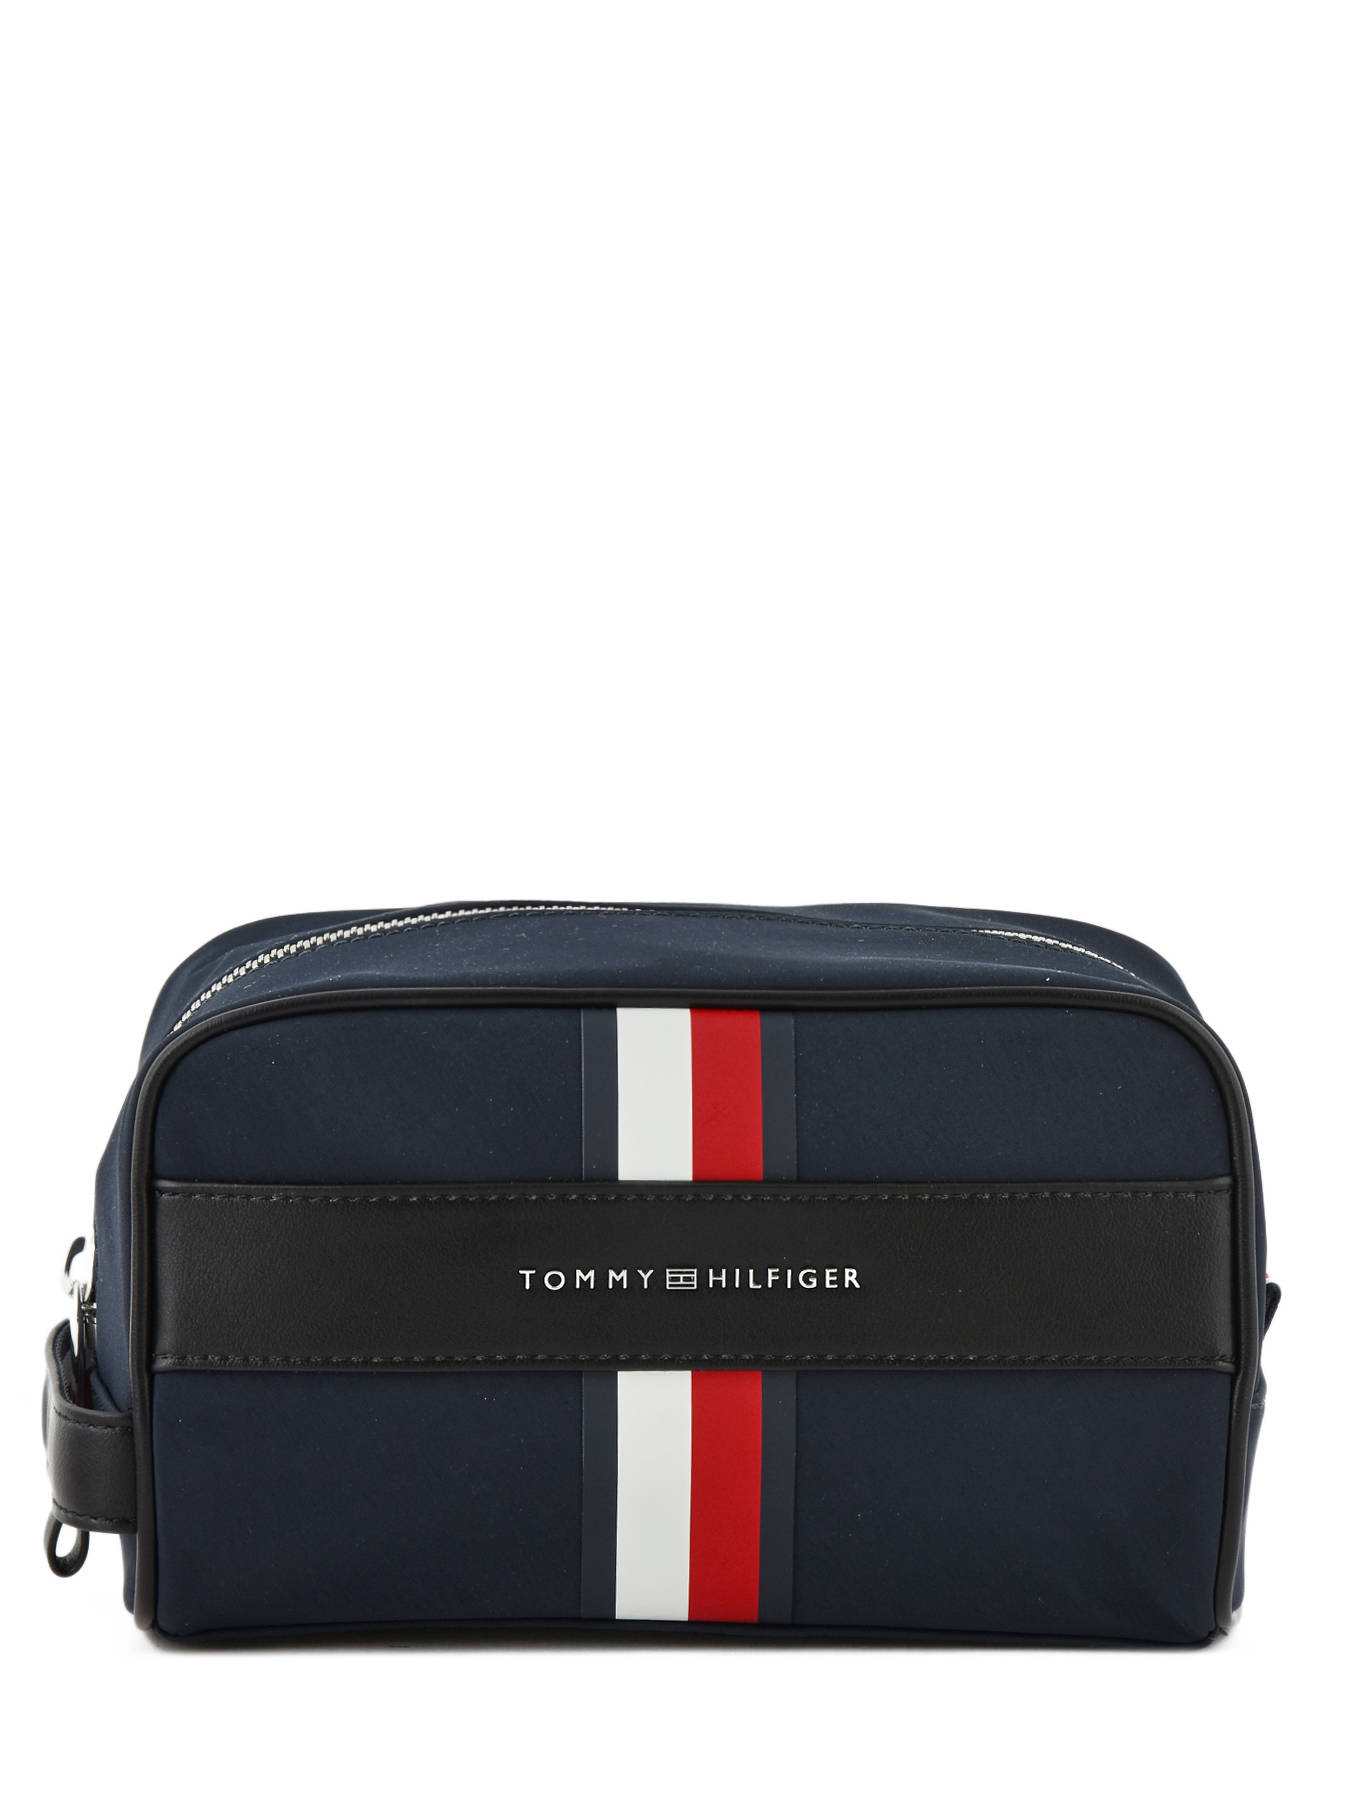 095d6c0edf ... Toiletry Kit Tommy hilfiger Black elevated AM04519 ...